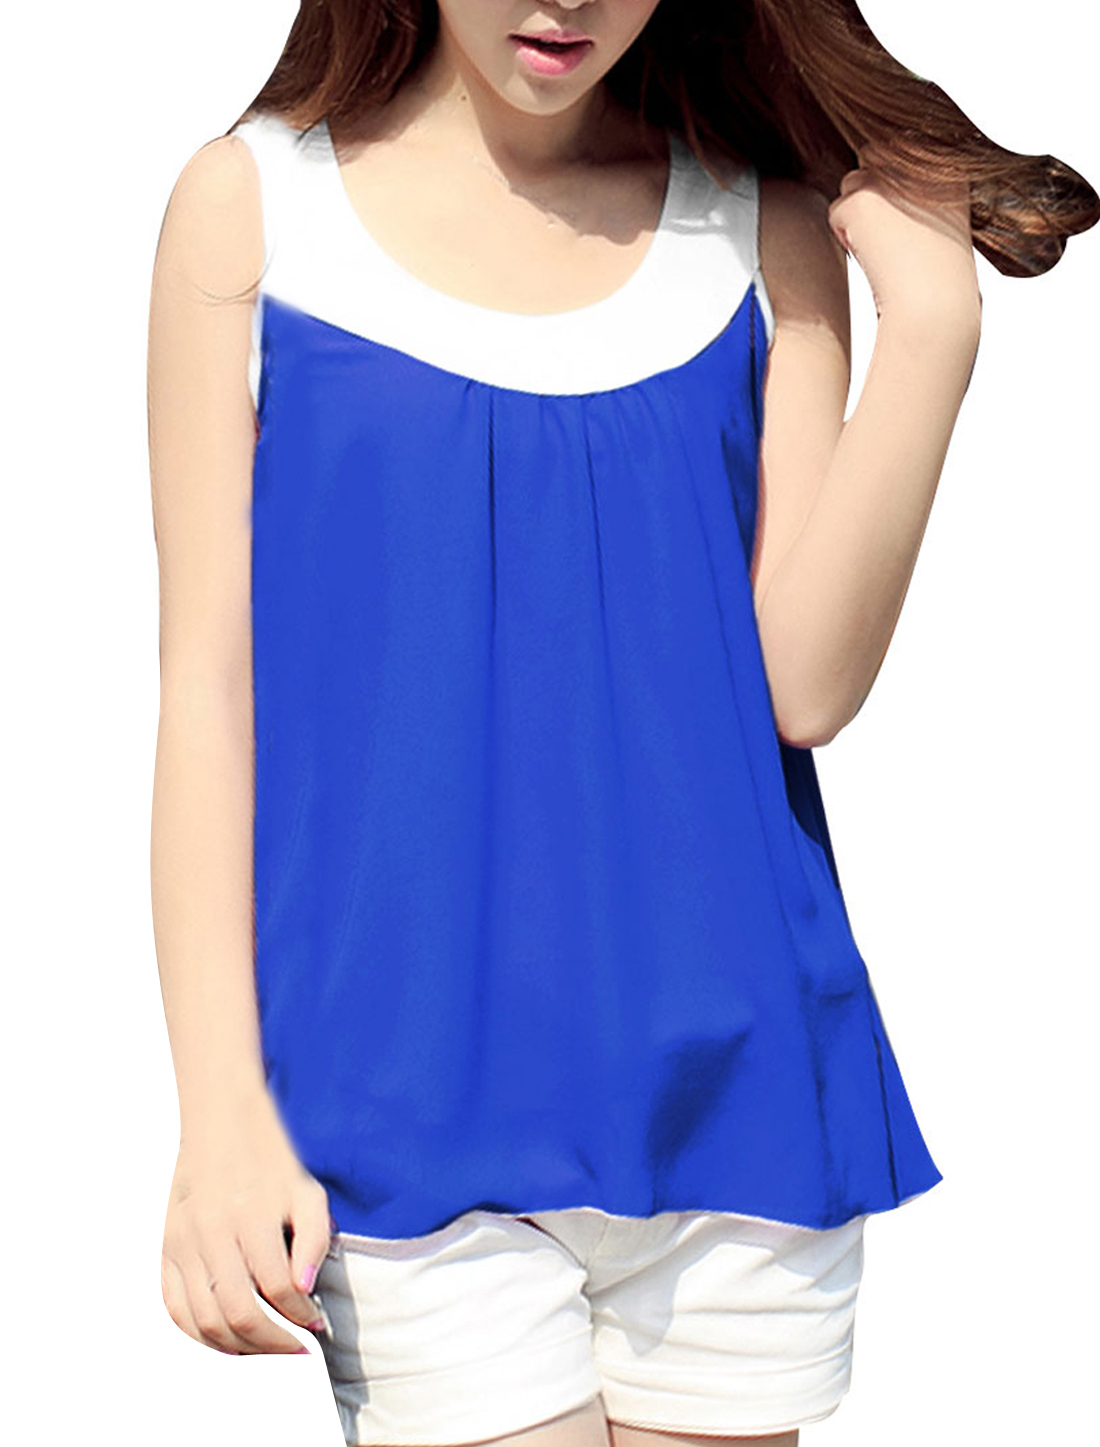 Women New Fashion Scoop Neck Sleeveless Royalblue Chiffon Tank Tops S